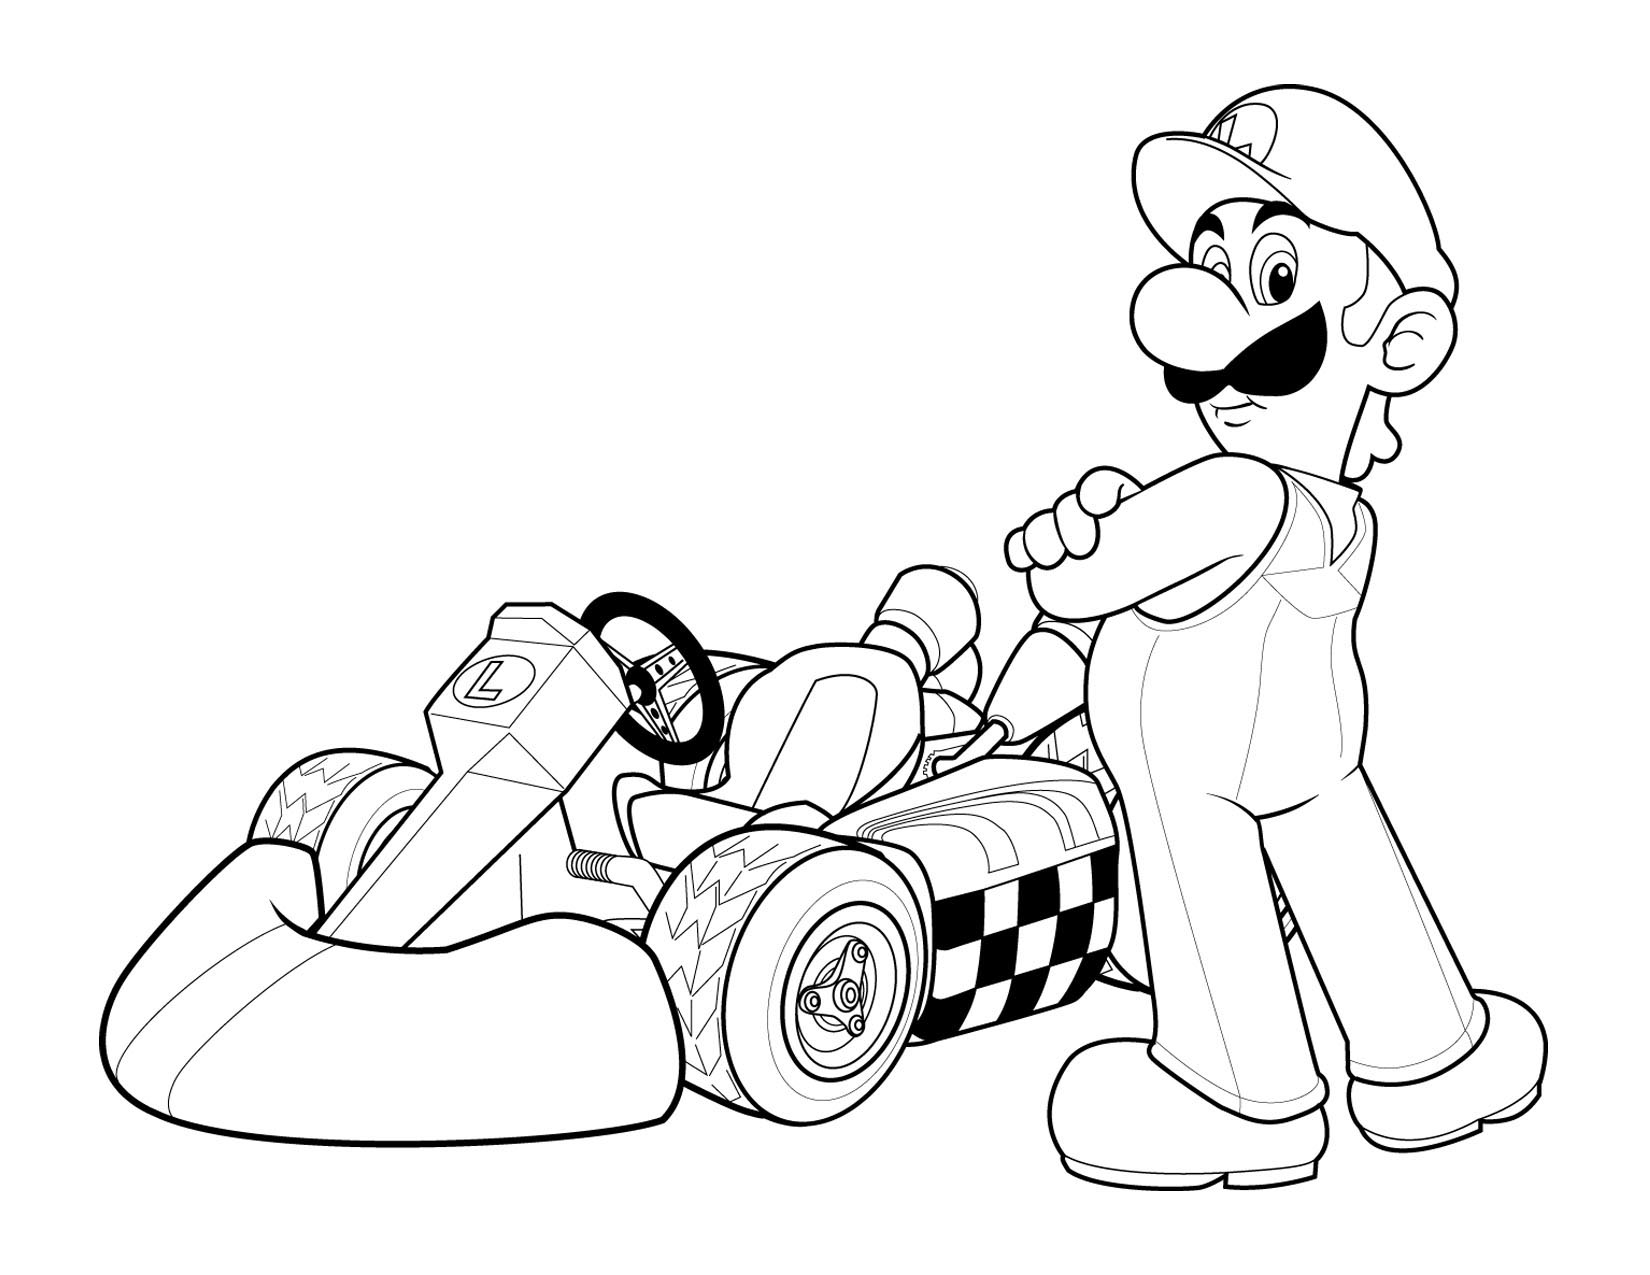 super mario kids coloring pages 2 - Coloring Pages Kindergarteners